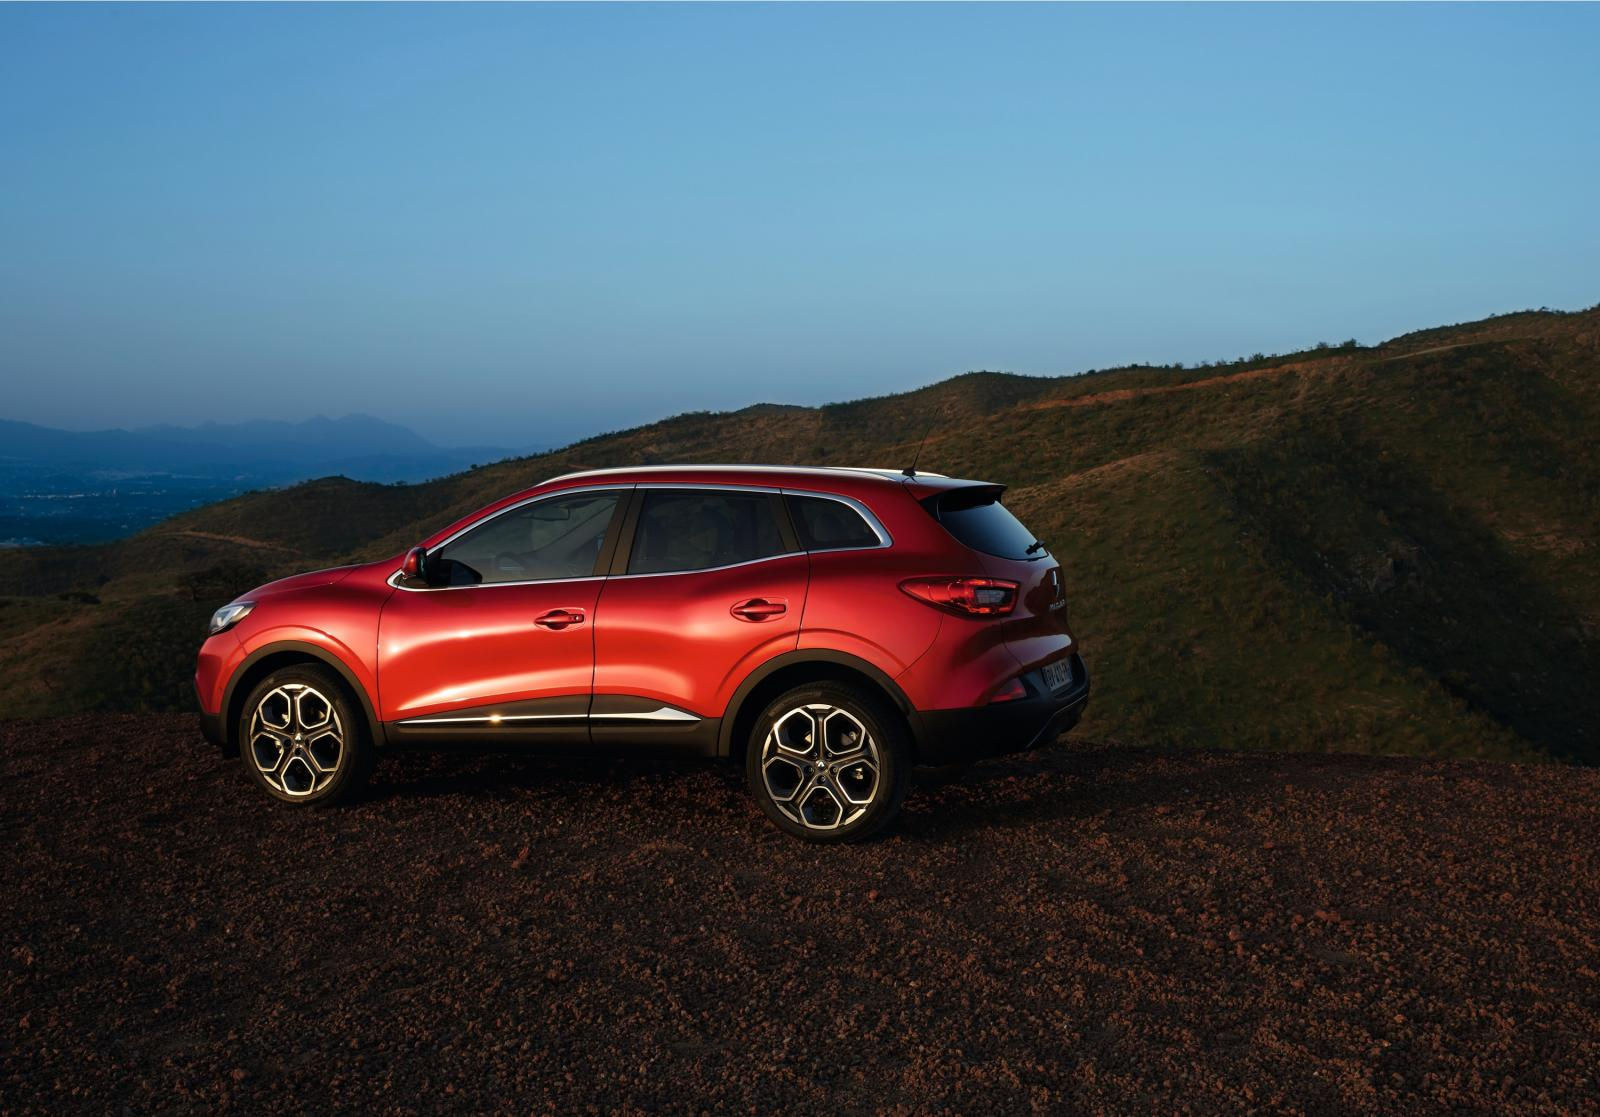 2018 Renault Kadjar photo - 4